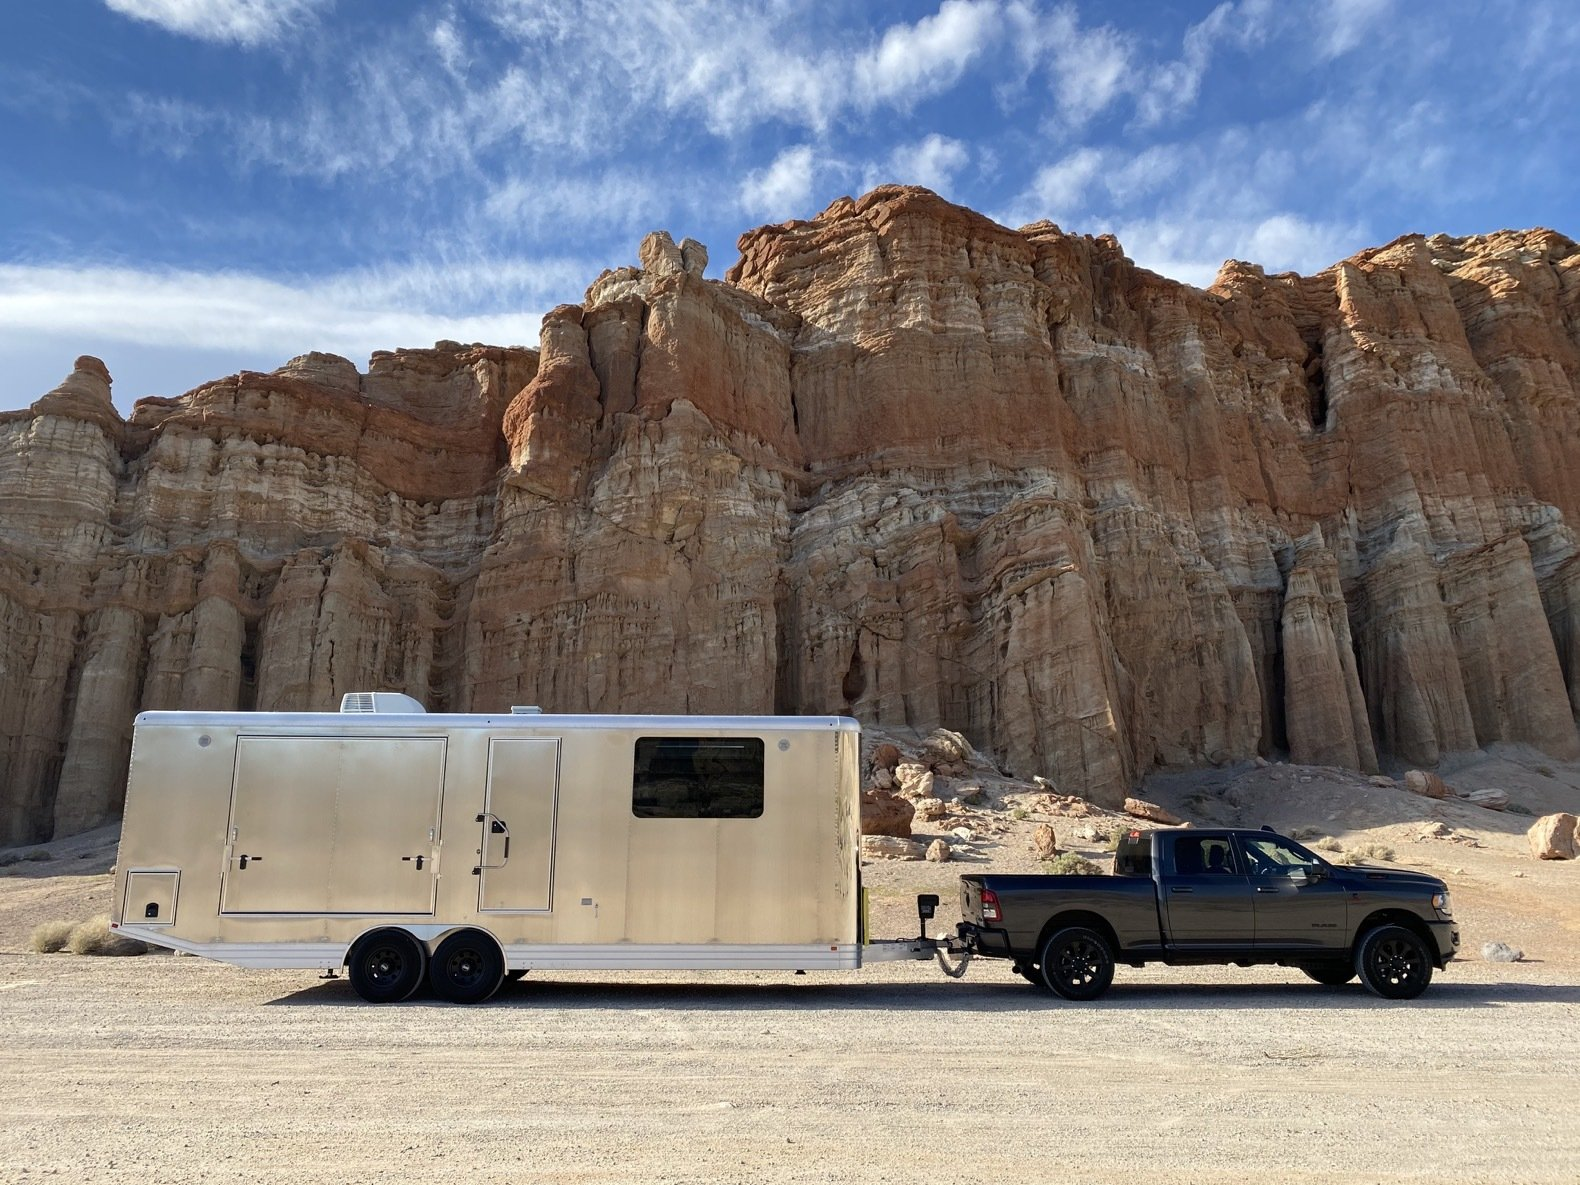 Living Vehicle Unveils 3 New Solar-Powered Trailers for Going Off-Grid in Luxury